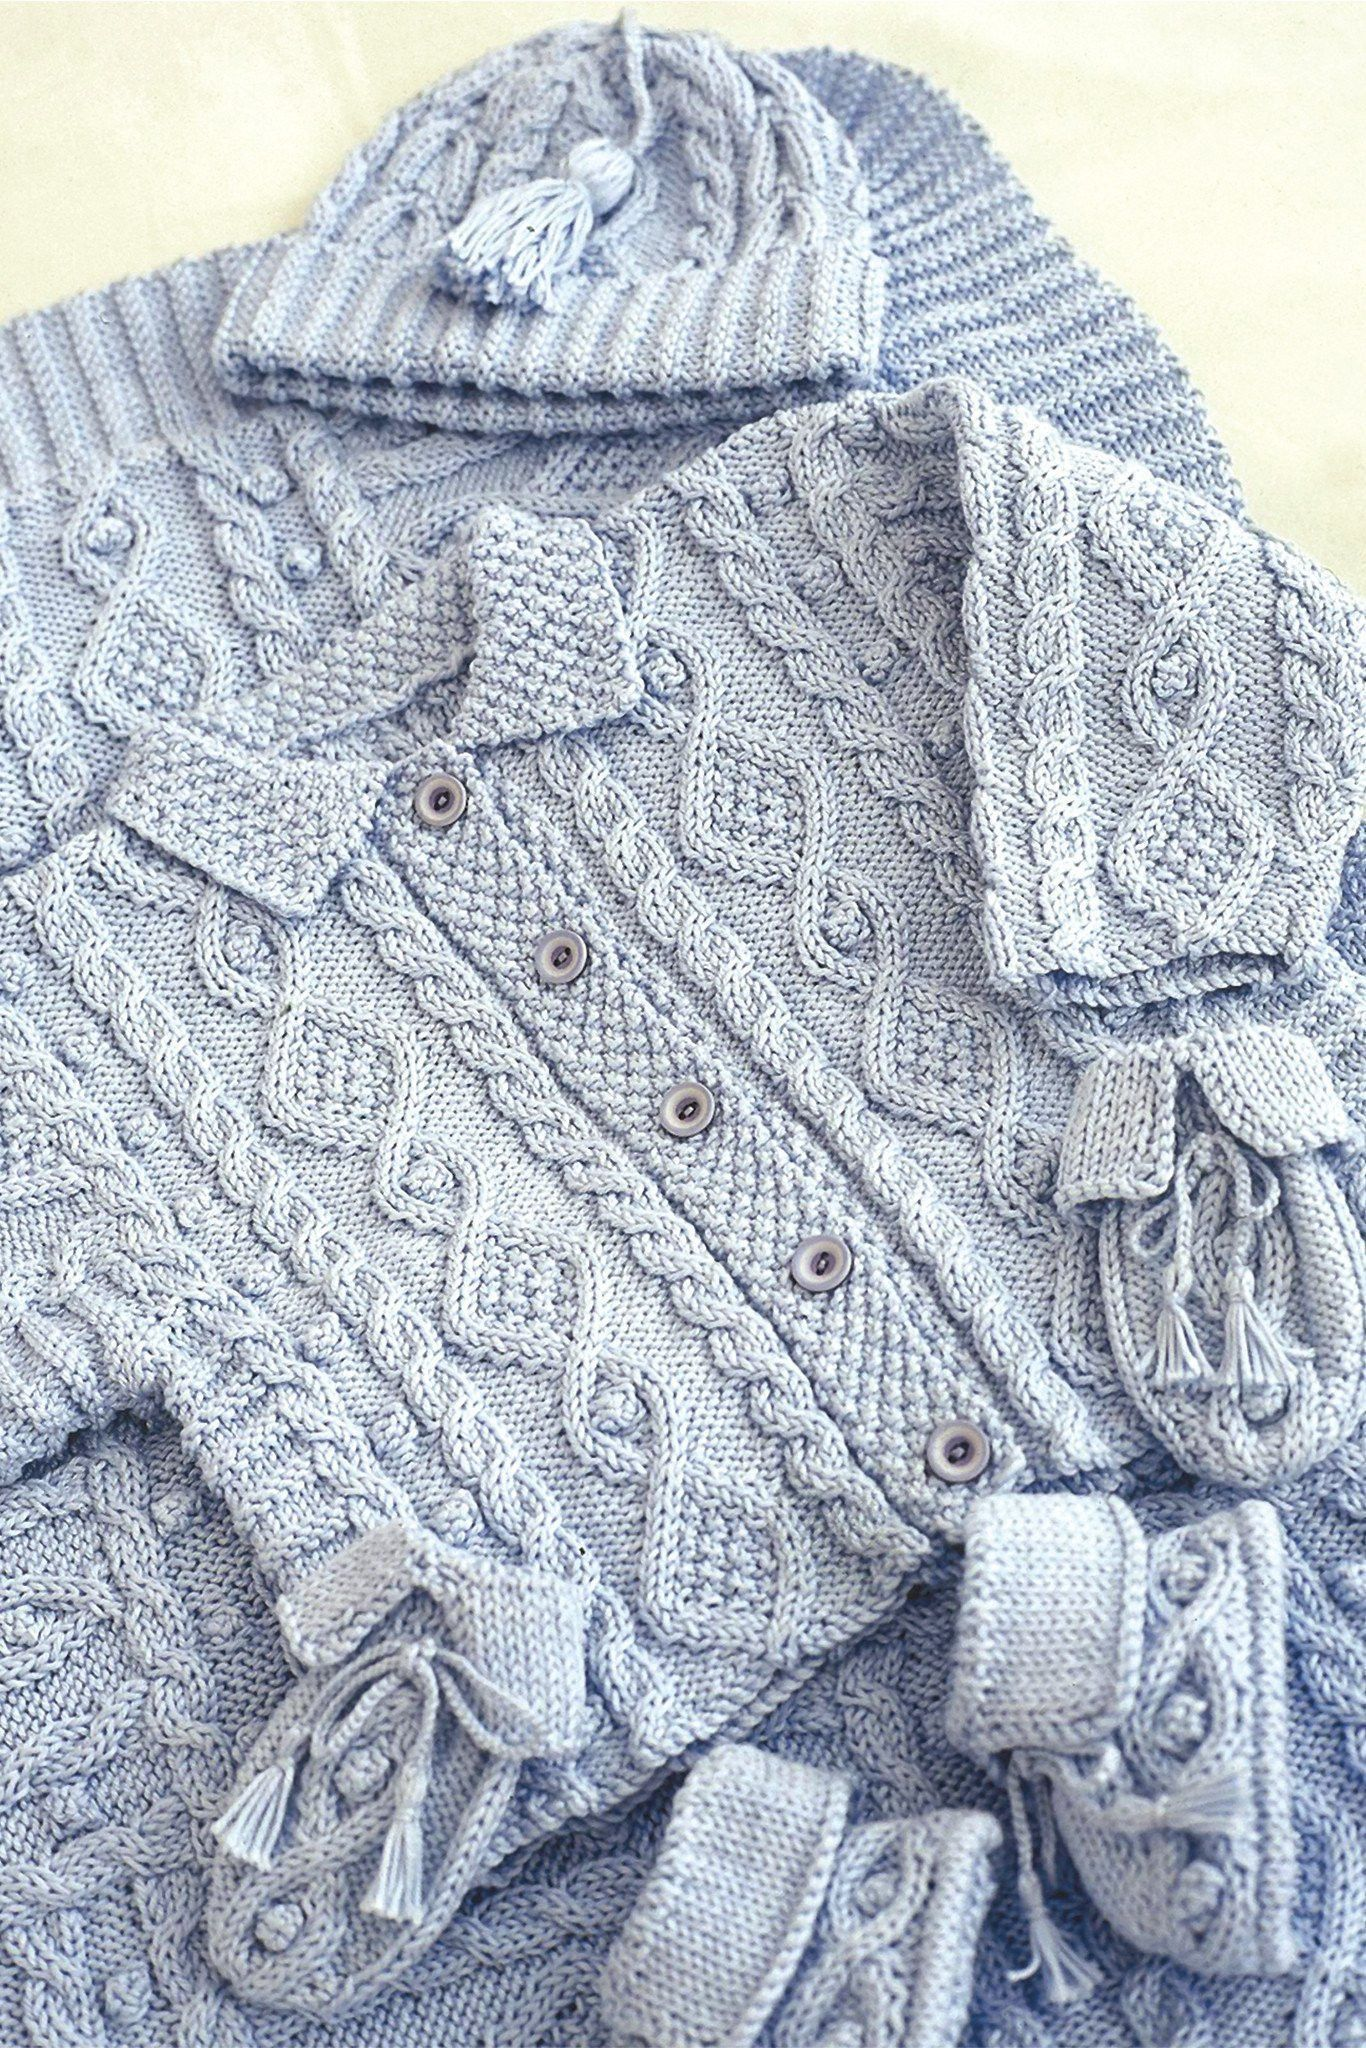 Baby Jacket, Accessories And Blanket Knitting Patterns ...